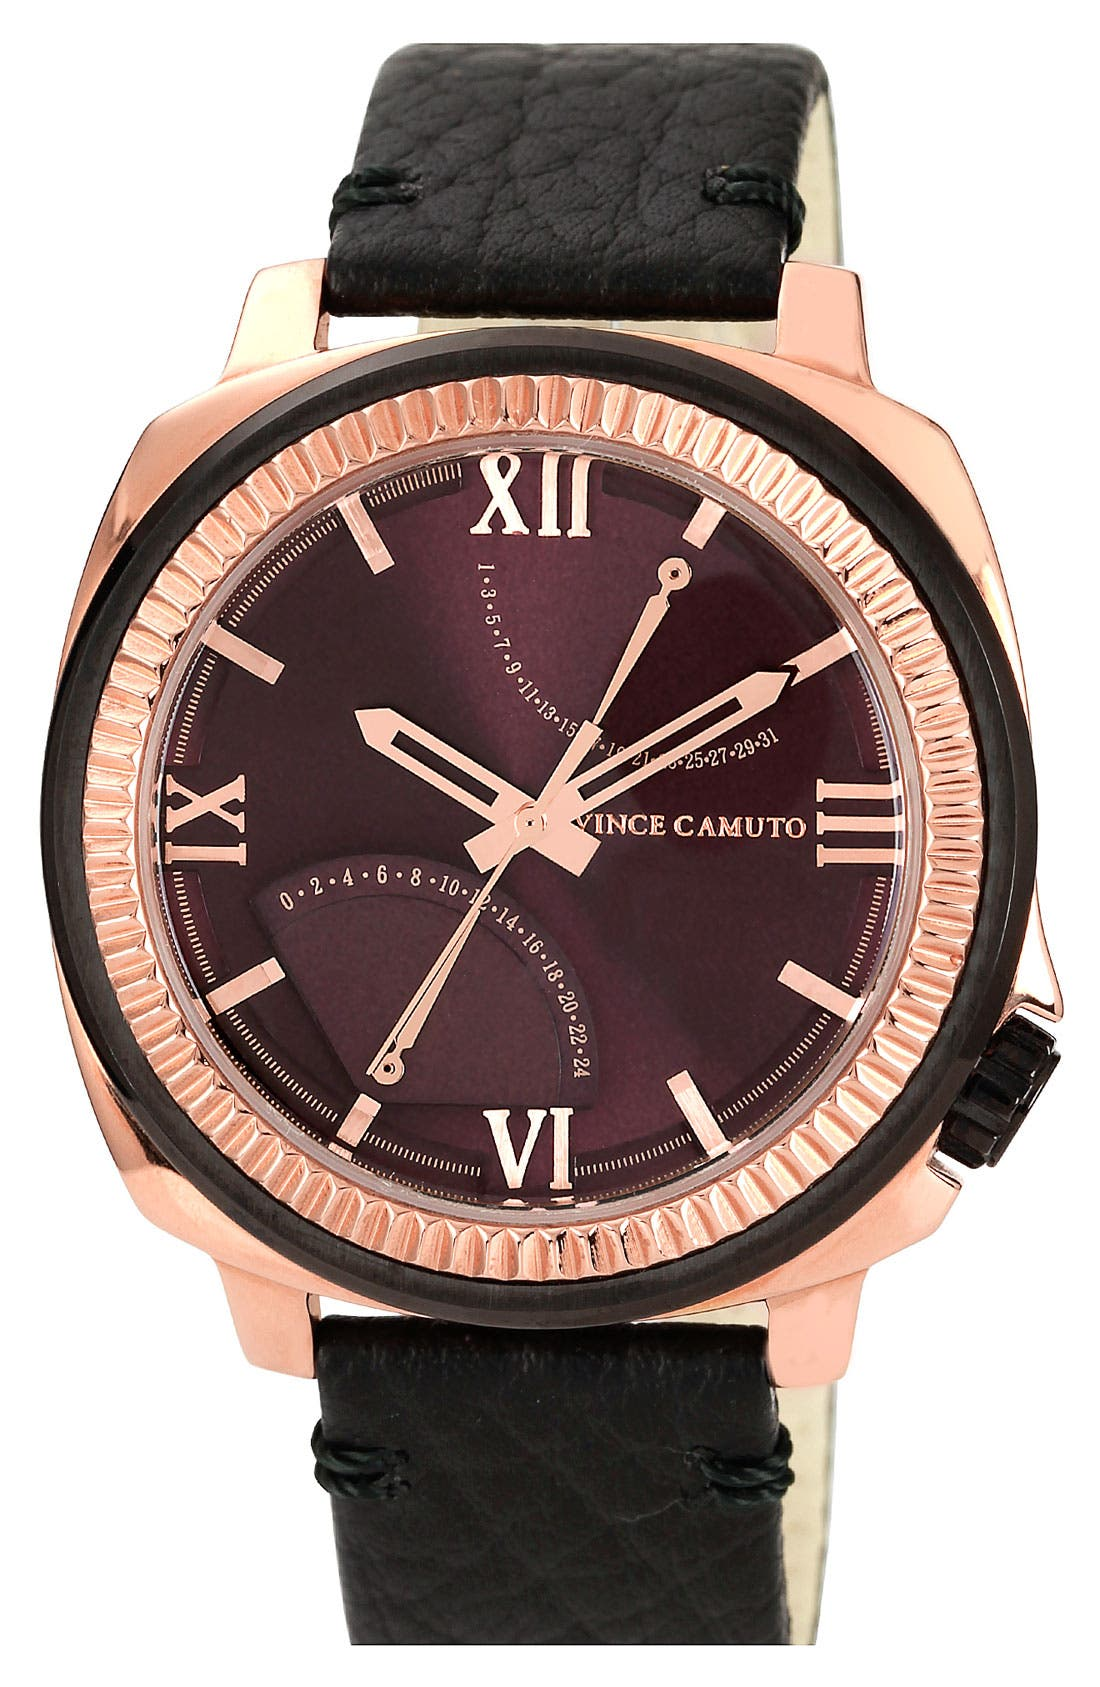 Main Image - Vince Camuto Flyback Dial Leather Strap Watch, 43mm